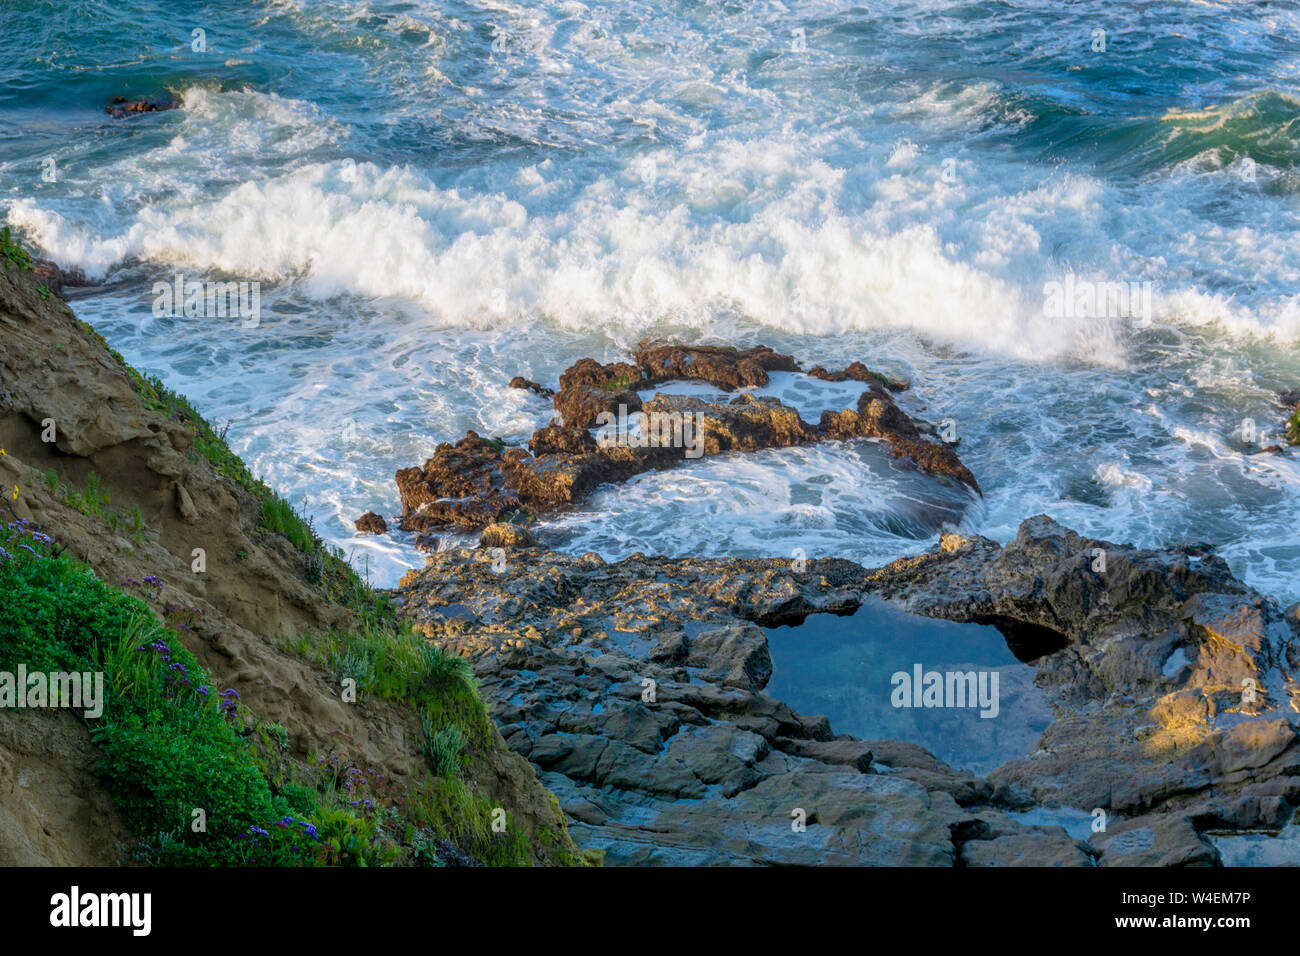 Early morning, high angle closeup view of a tide pool, ocean waves crashing against rocks and a cliff in Laguna Beach, California. Stock Photo